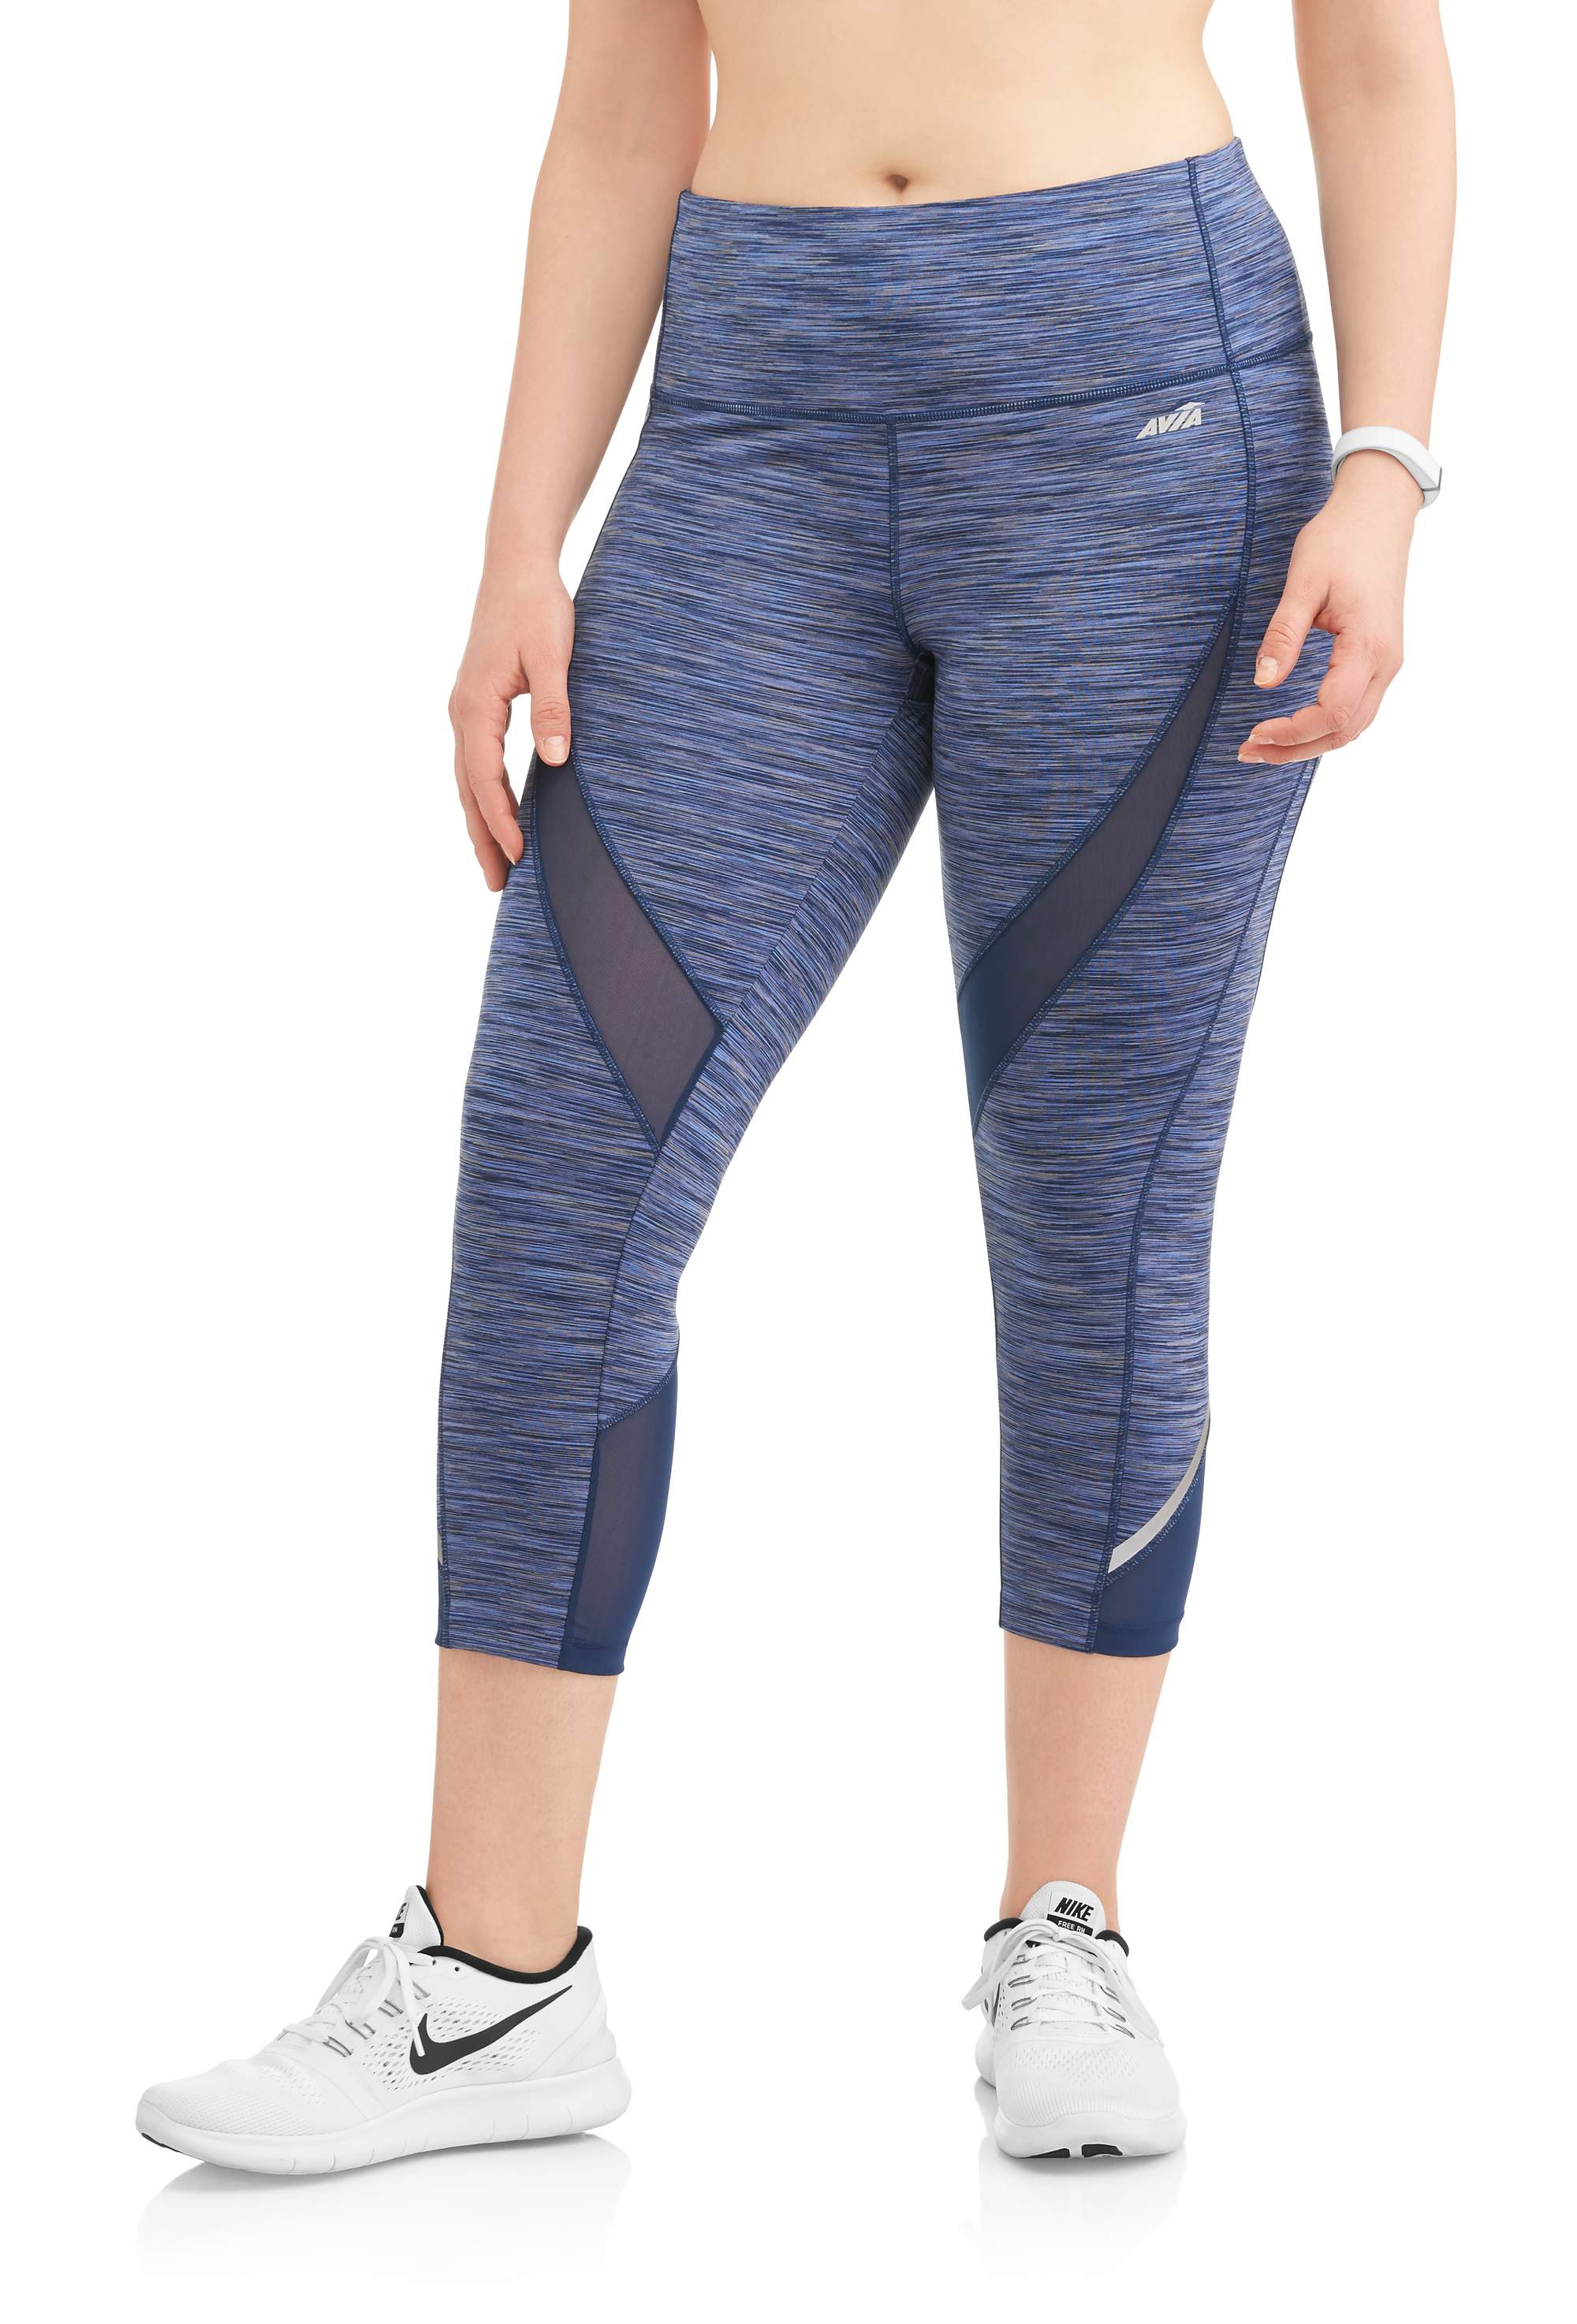 Women's Plus Size Active Aspire Performance 22 Capri